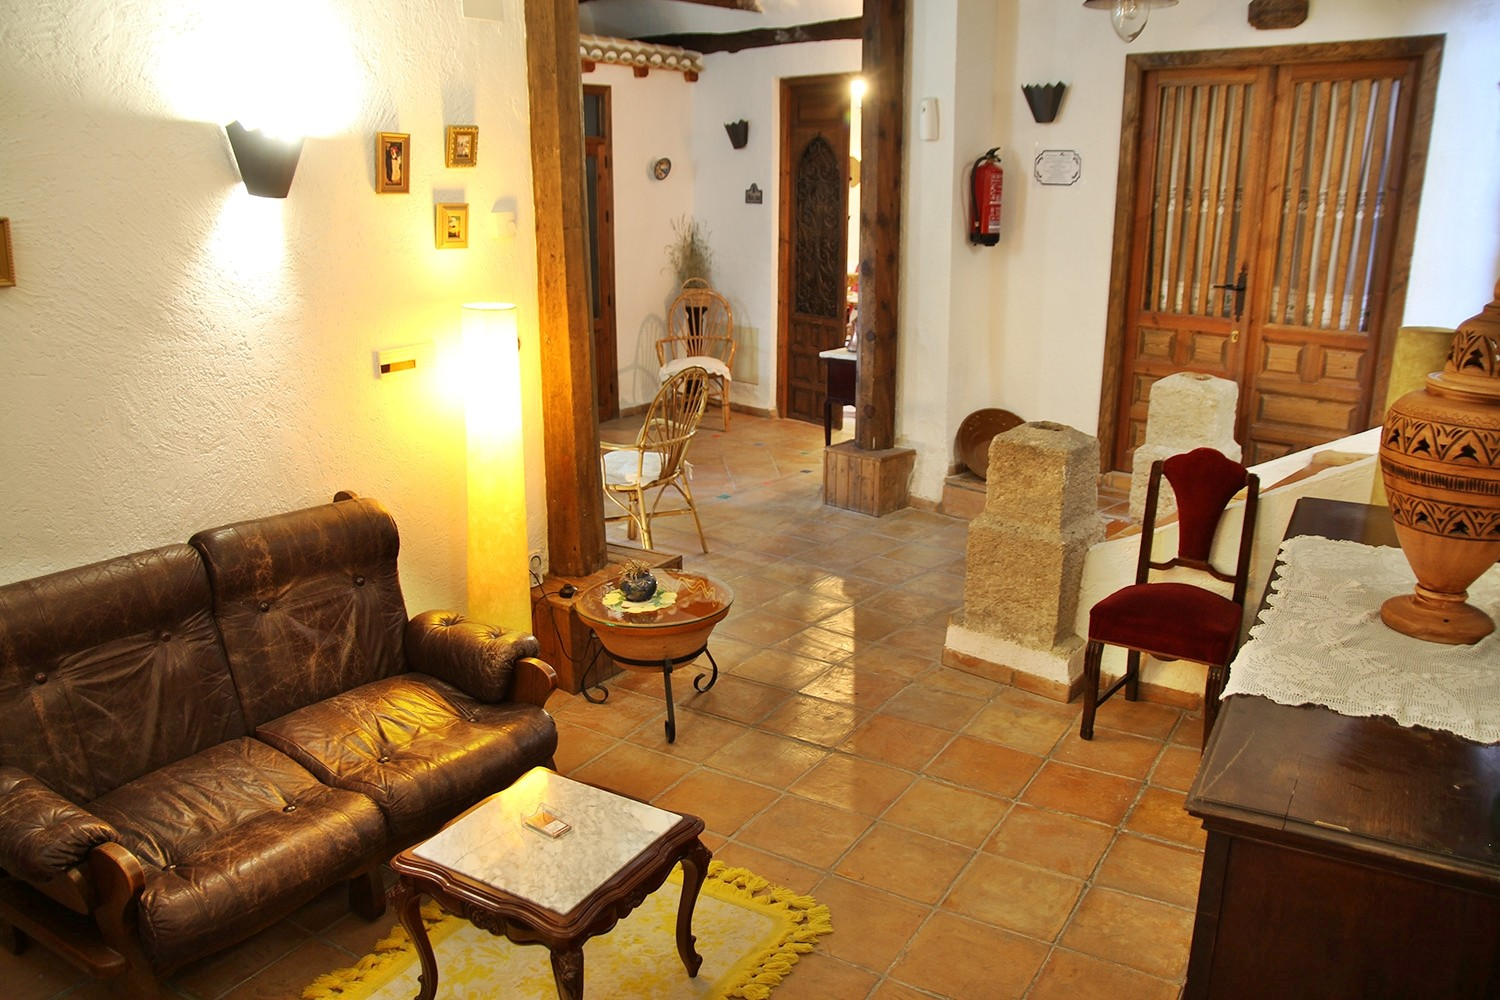 The communal lounge on the ground floor